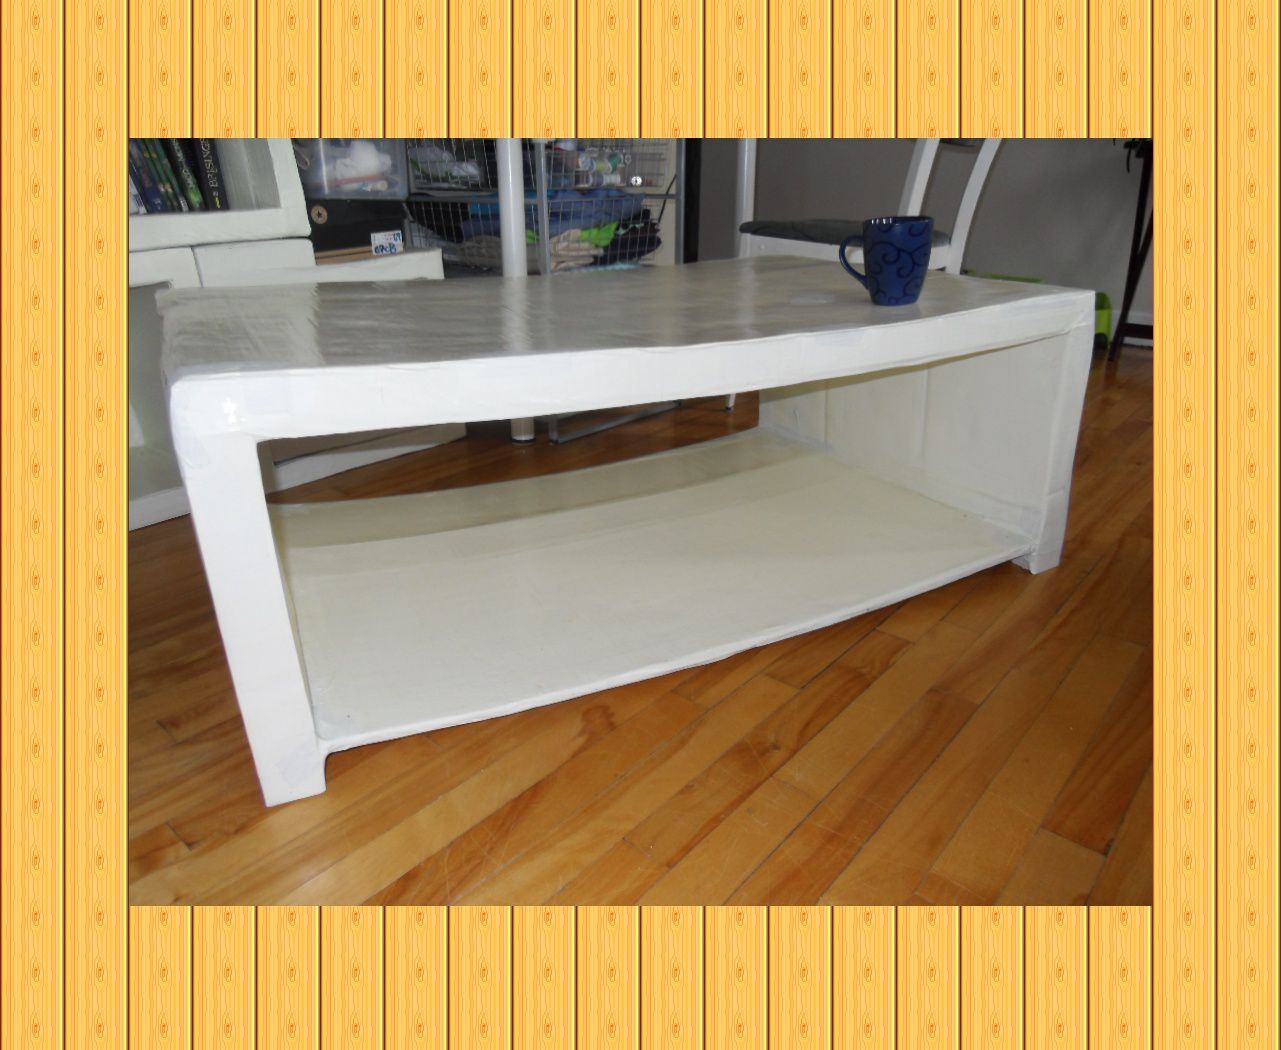 Table basse moderne kijiji for Meuble de salle de bain kijiji montreal